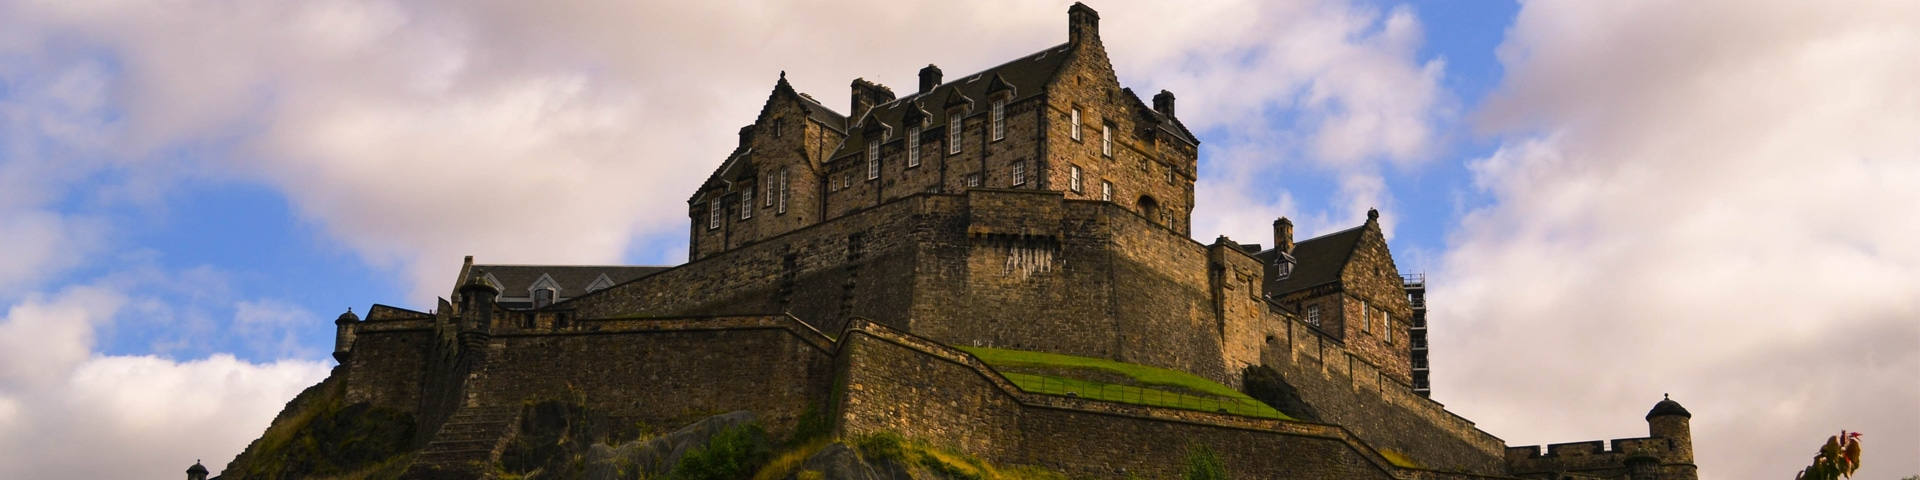 Edinburgh Castle Feature Image Tiered Pricing Blog Appointedd